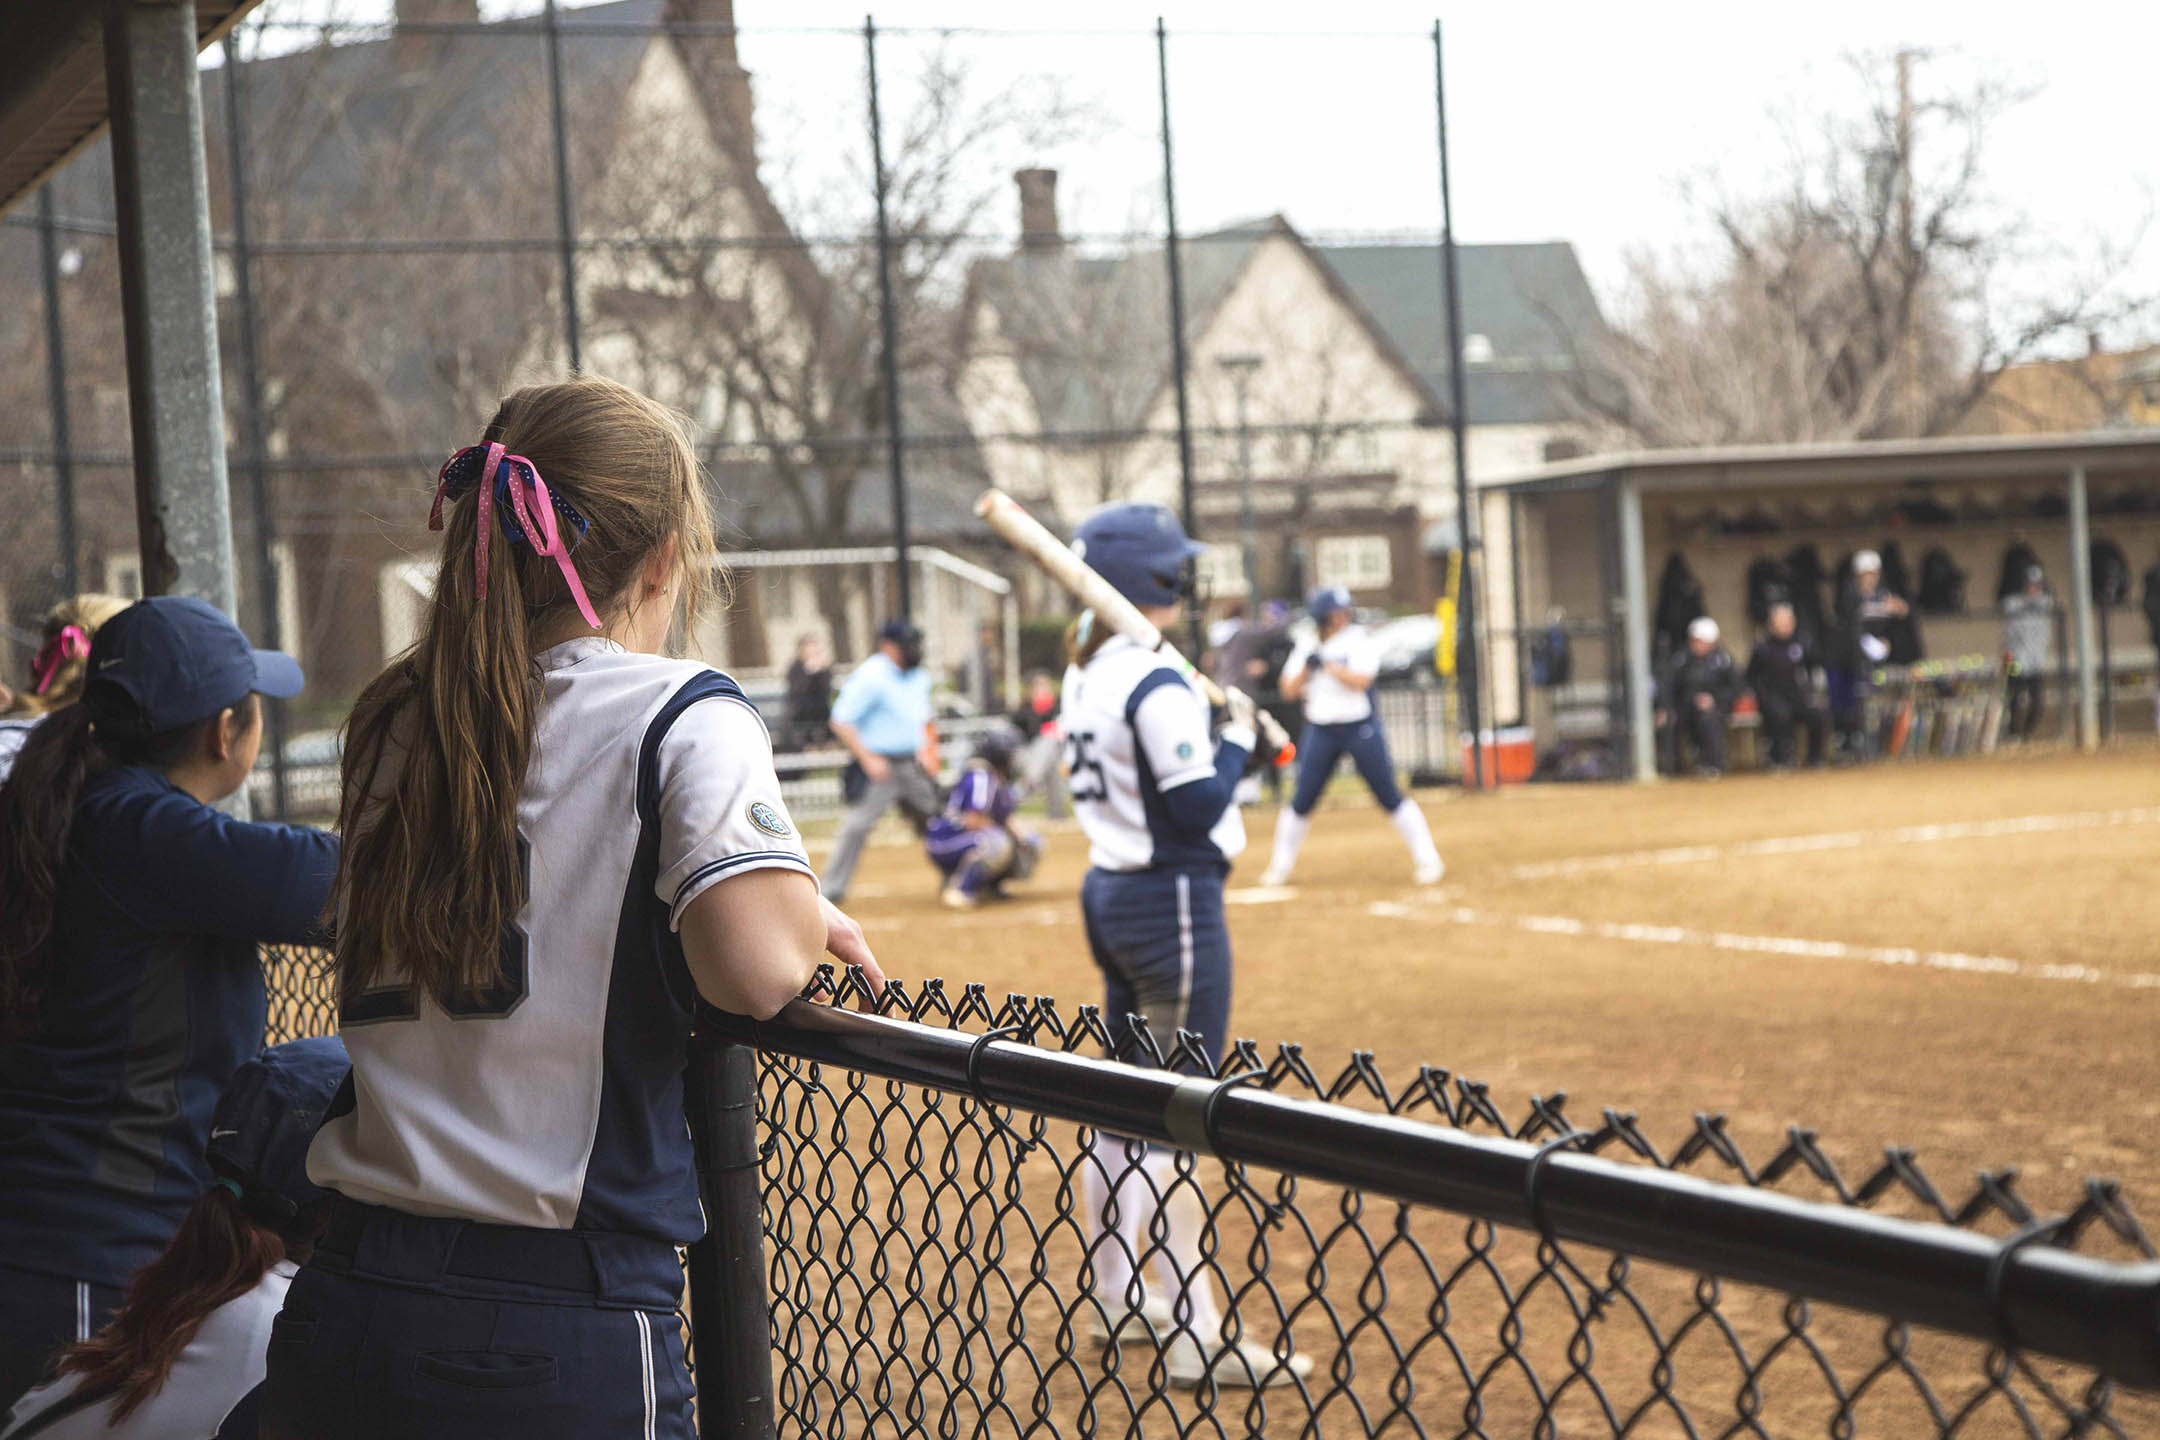 Walk-up songs are an important part of a batter's preparation before they go up to bat.